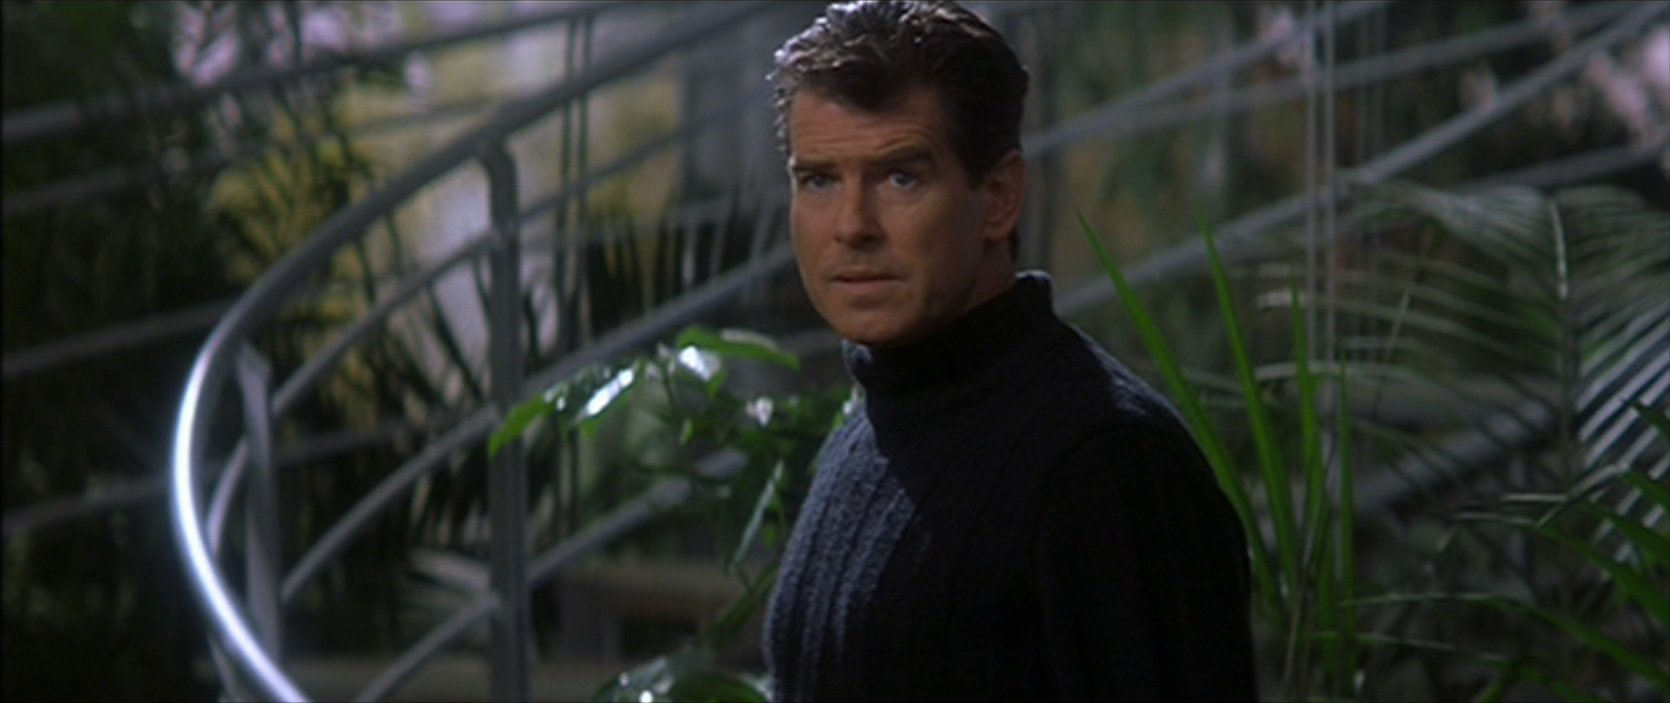 Bond's last turtleneck in Die Another Day